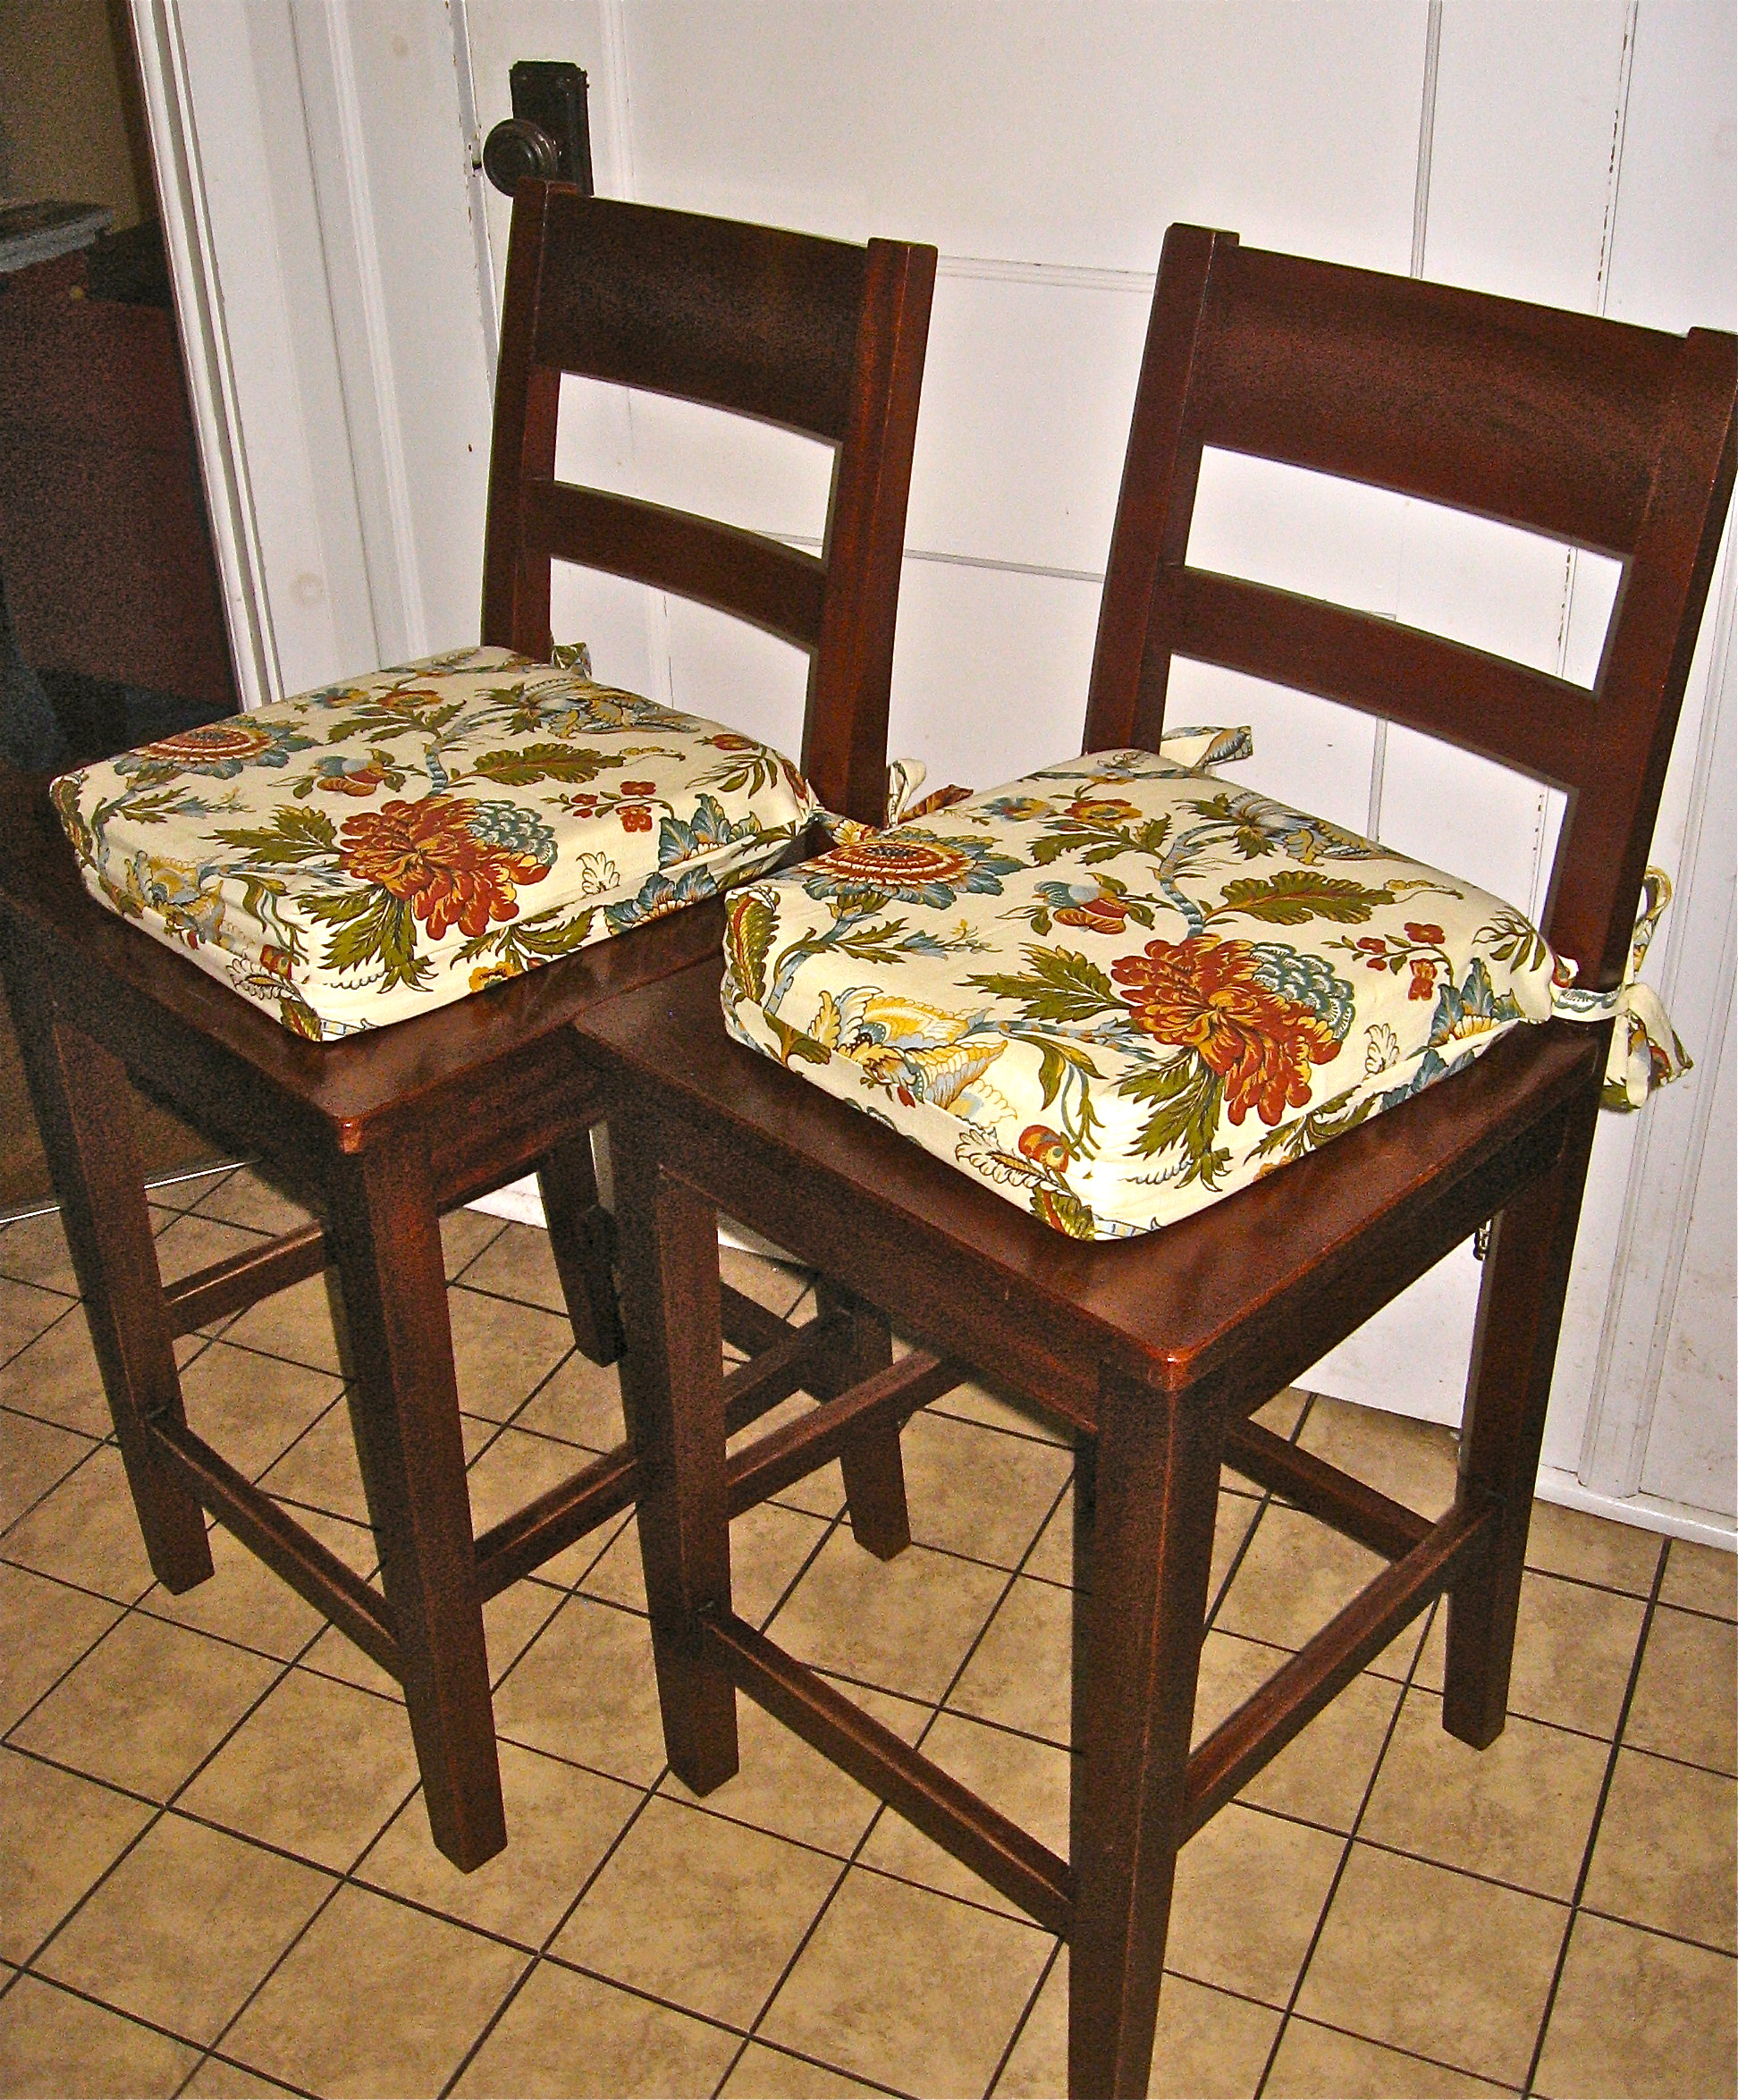 kitchen chairs cushions photo - 1